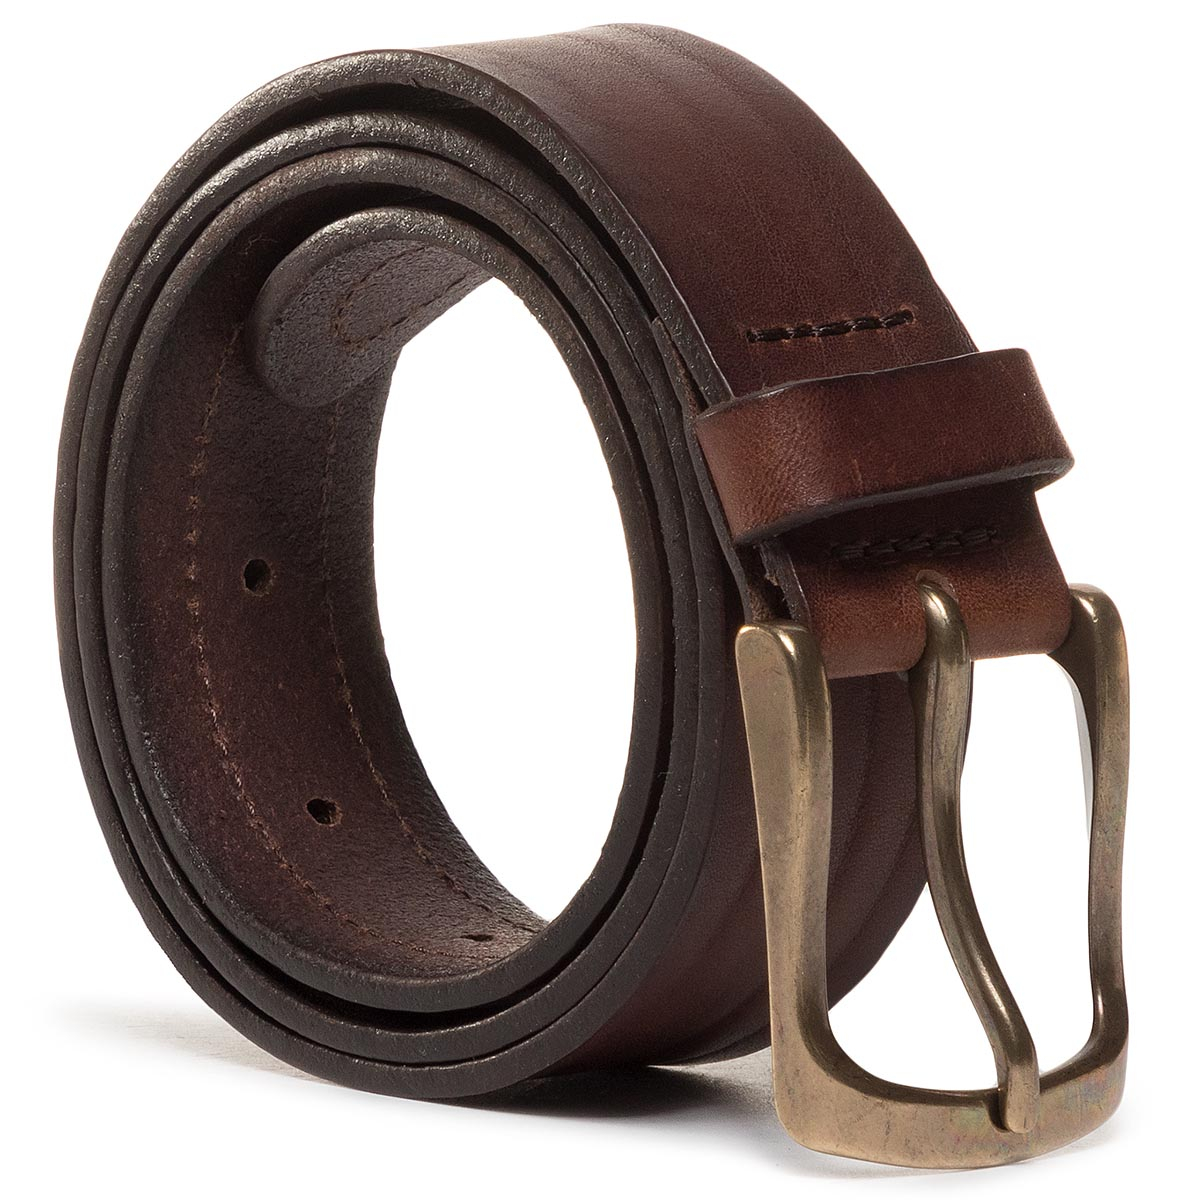 Curea Pentru Bărbați Wrangler - Double Layer Belt W0d1u1x85 Brown imagine epantofi.ro 2021